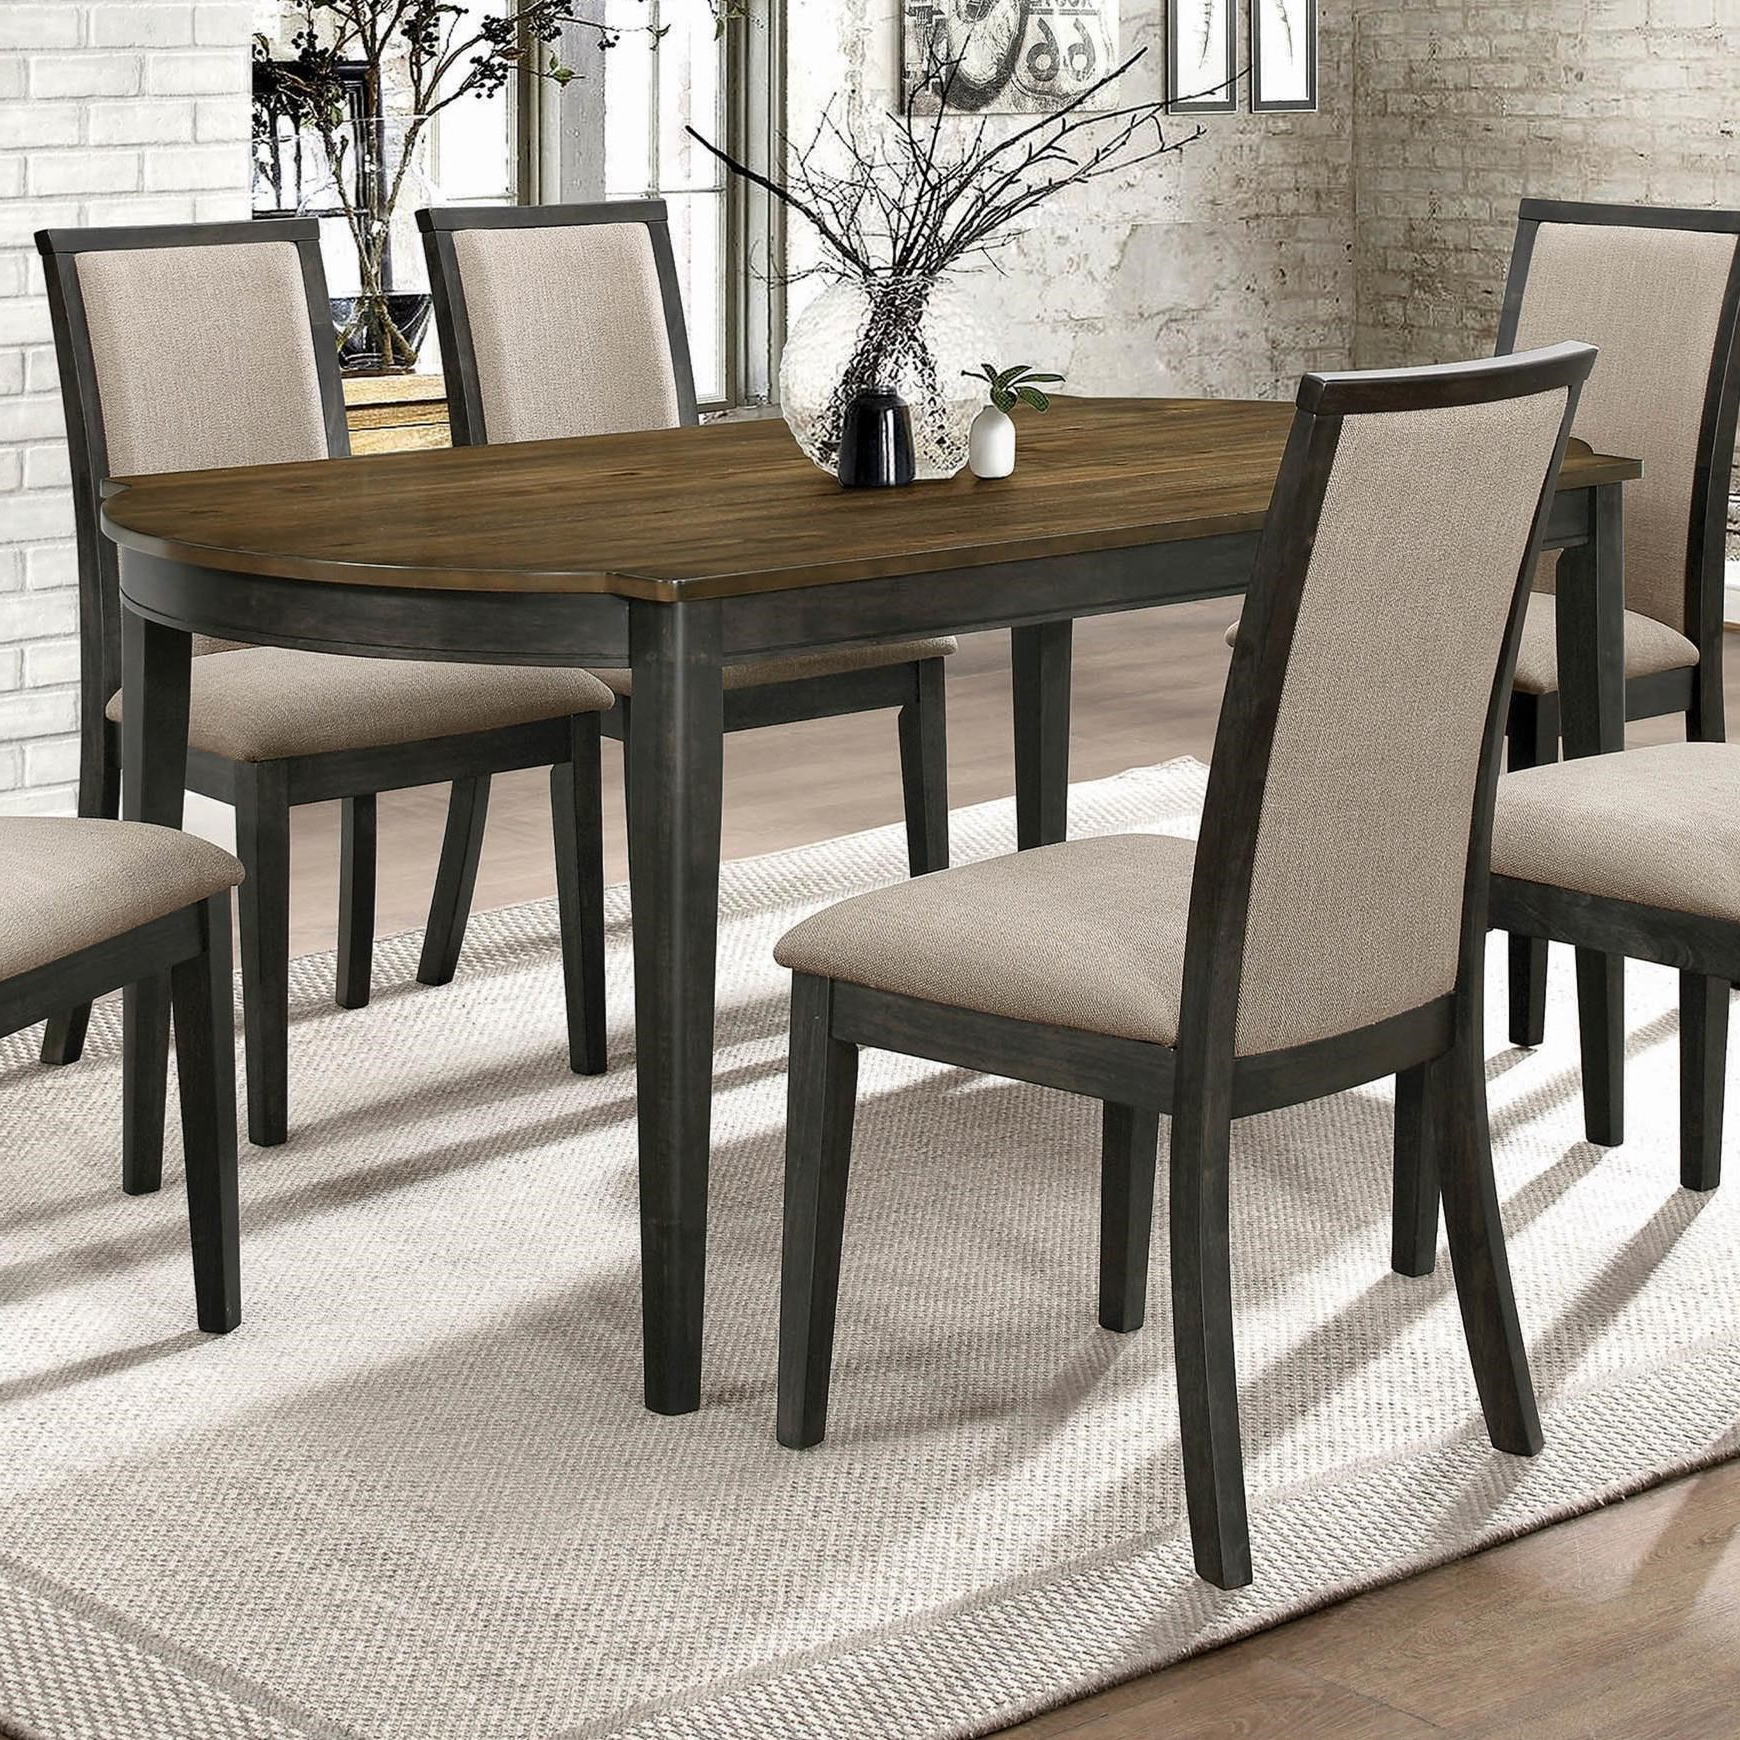 Coaster Clarksville Transitional Dining Table With 2 Tone With Current Charcoal Transitional 6 Seating Rectangular Dining Tables (View 18 of 30)